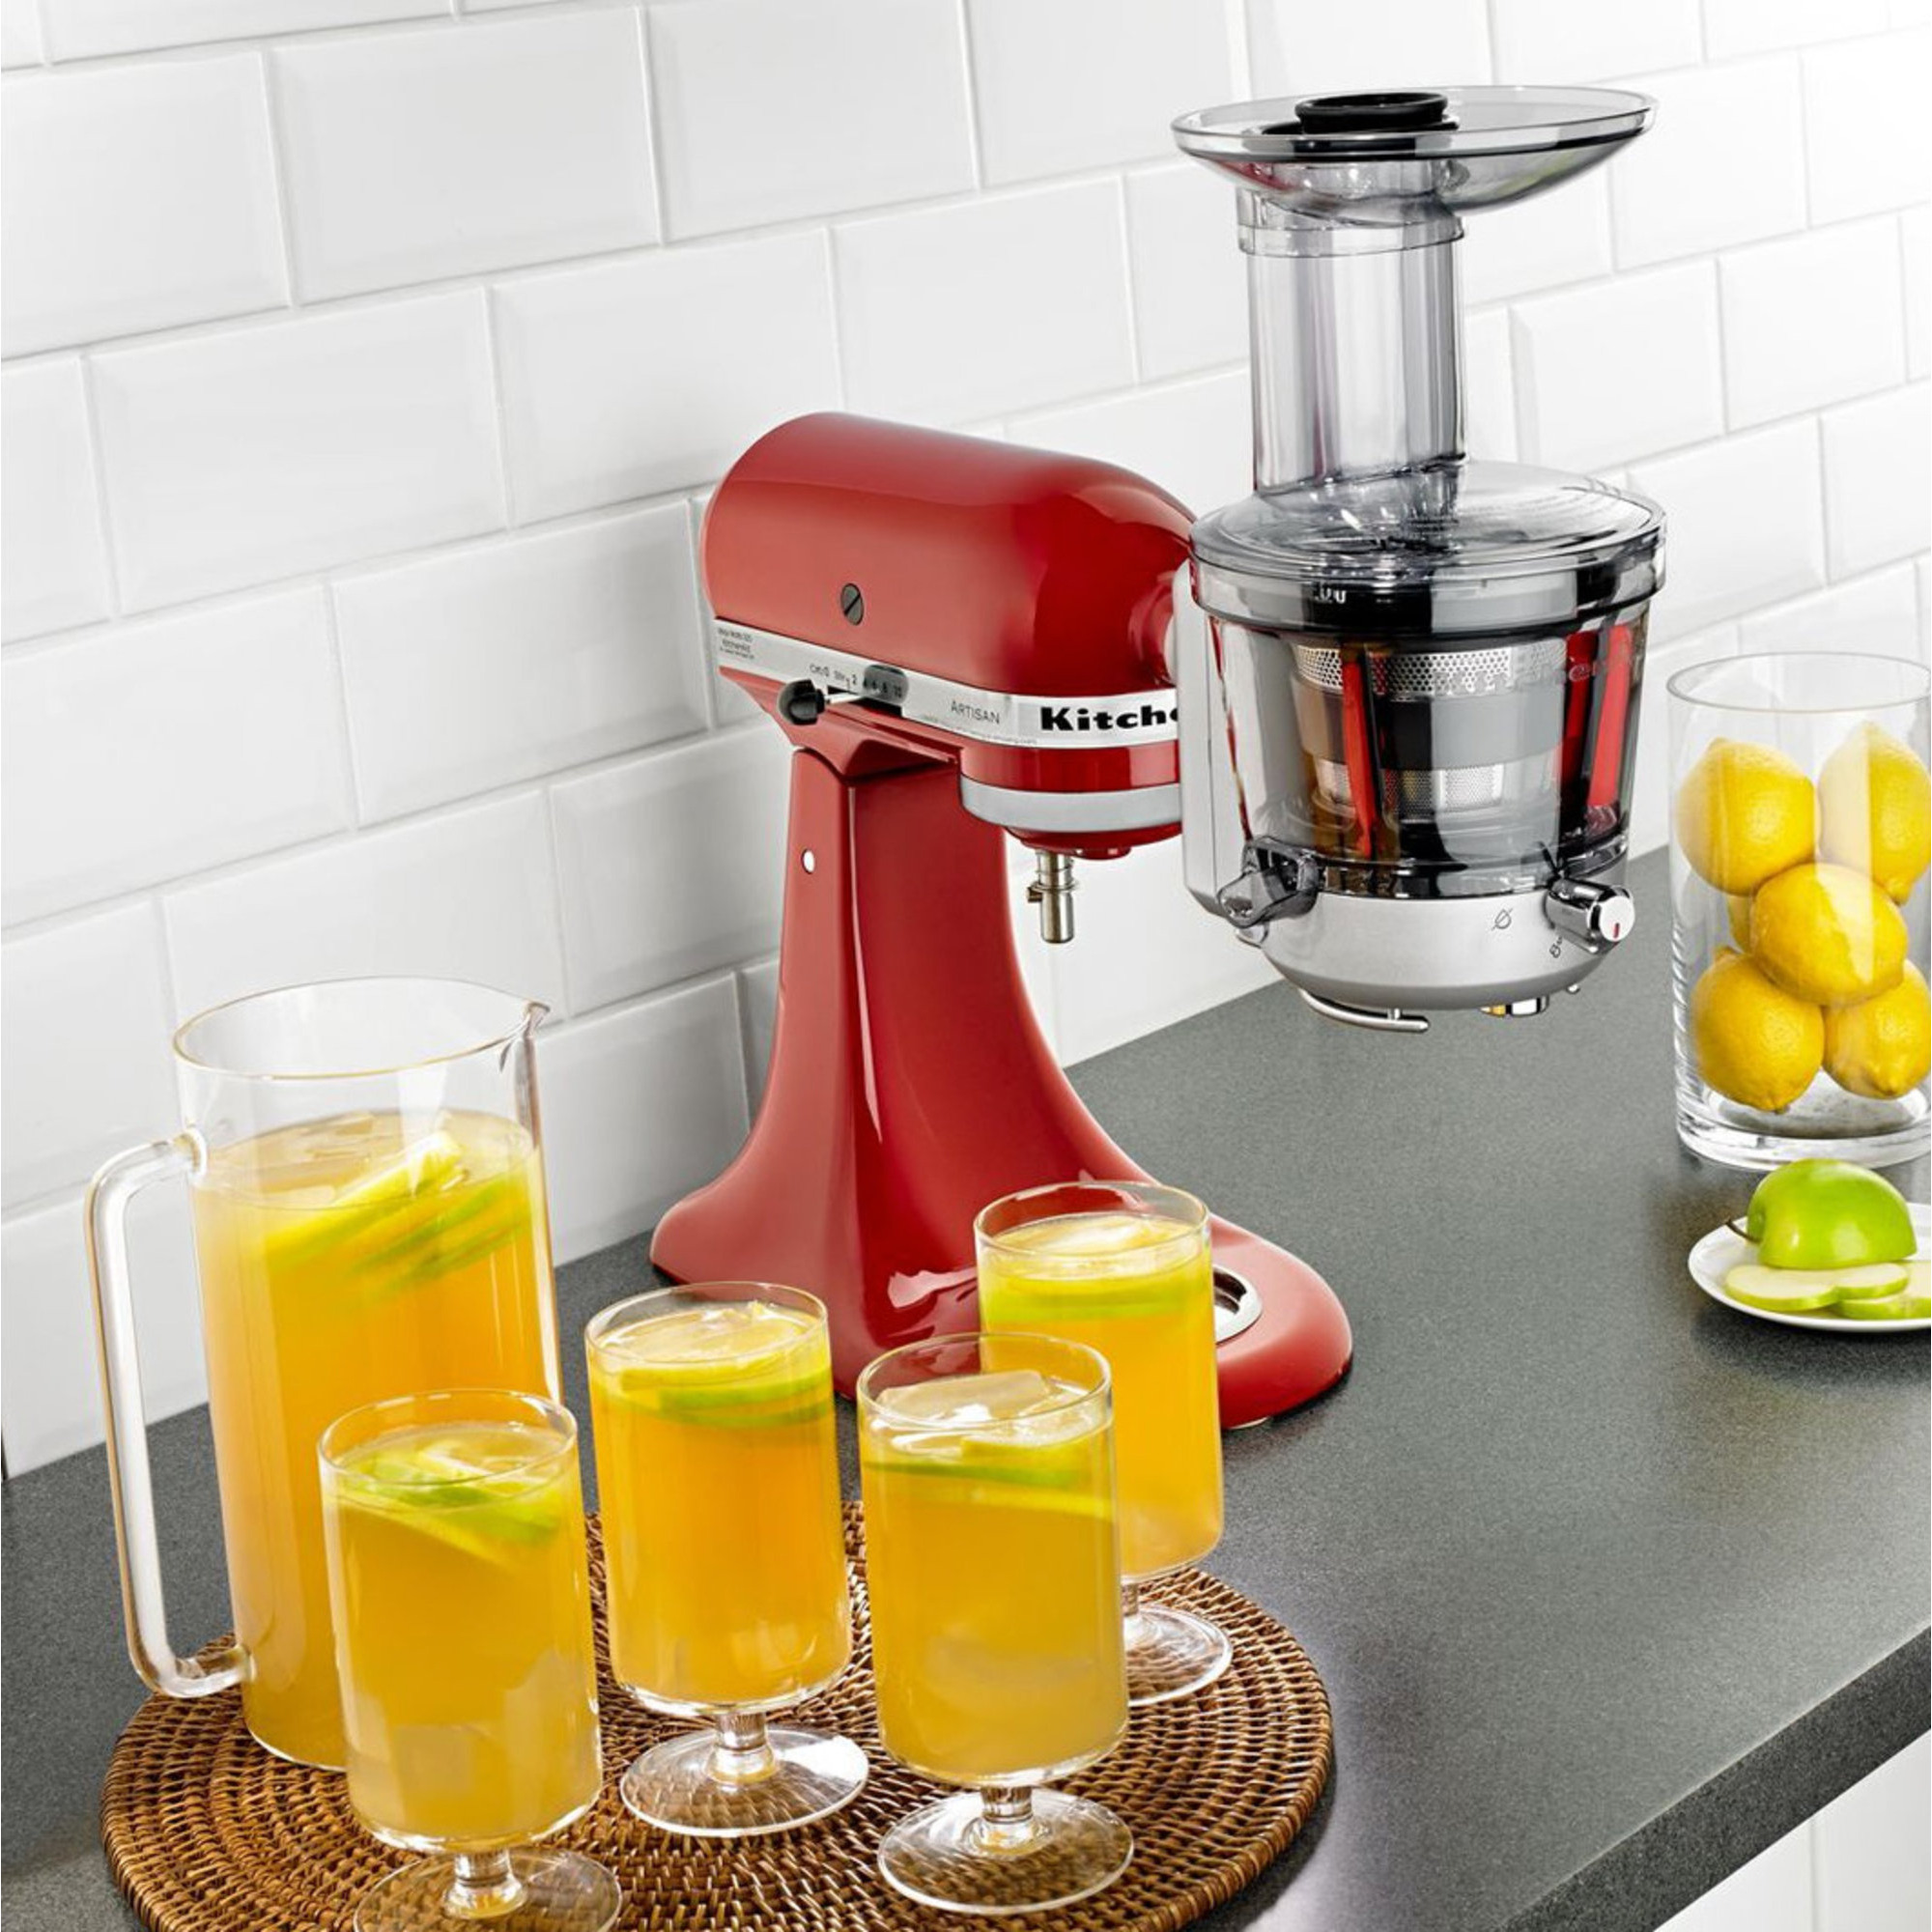 Kitchenaid Slow Juicer Preis : SM1JA Slow Juicer fra KitchenAid Slow Juicer tilbehor til KitchenAid